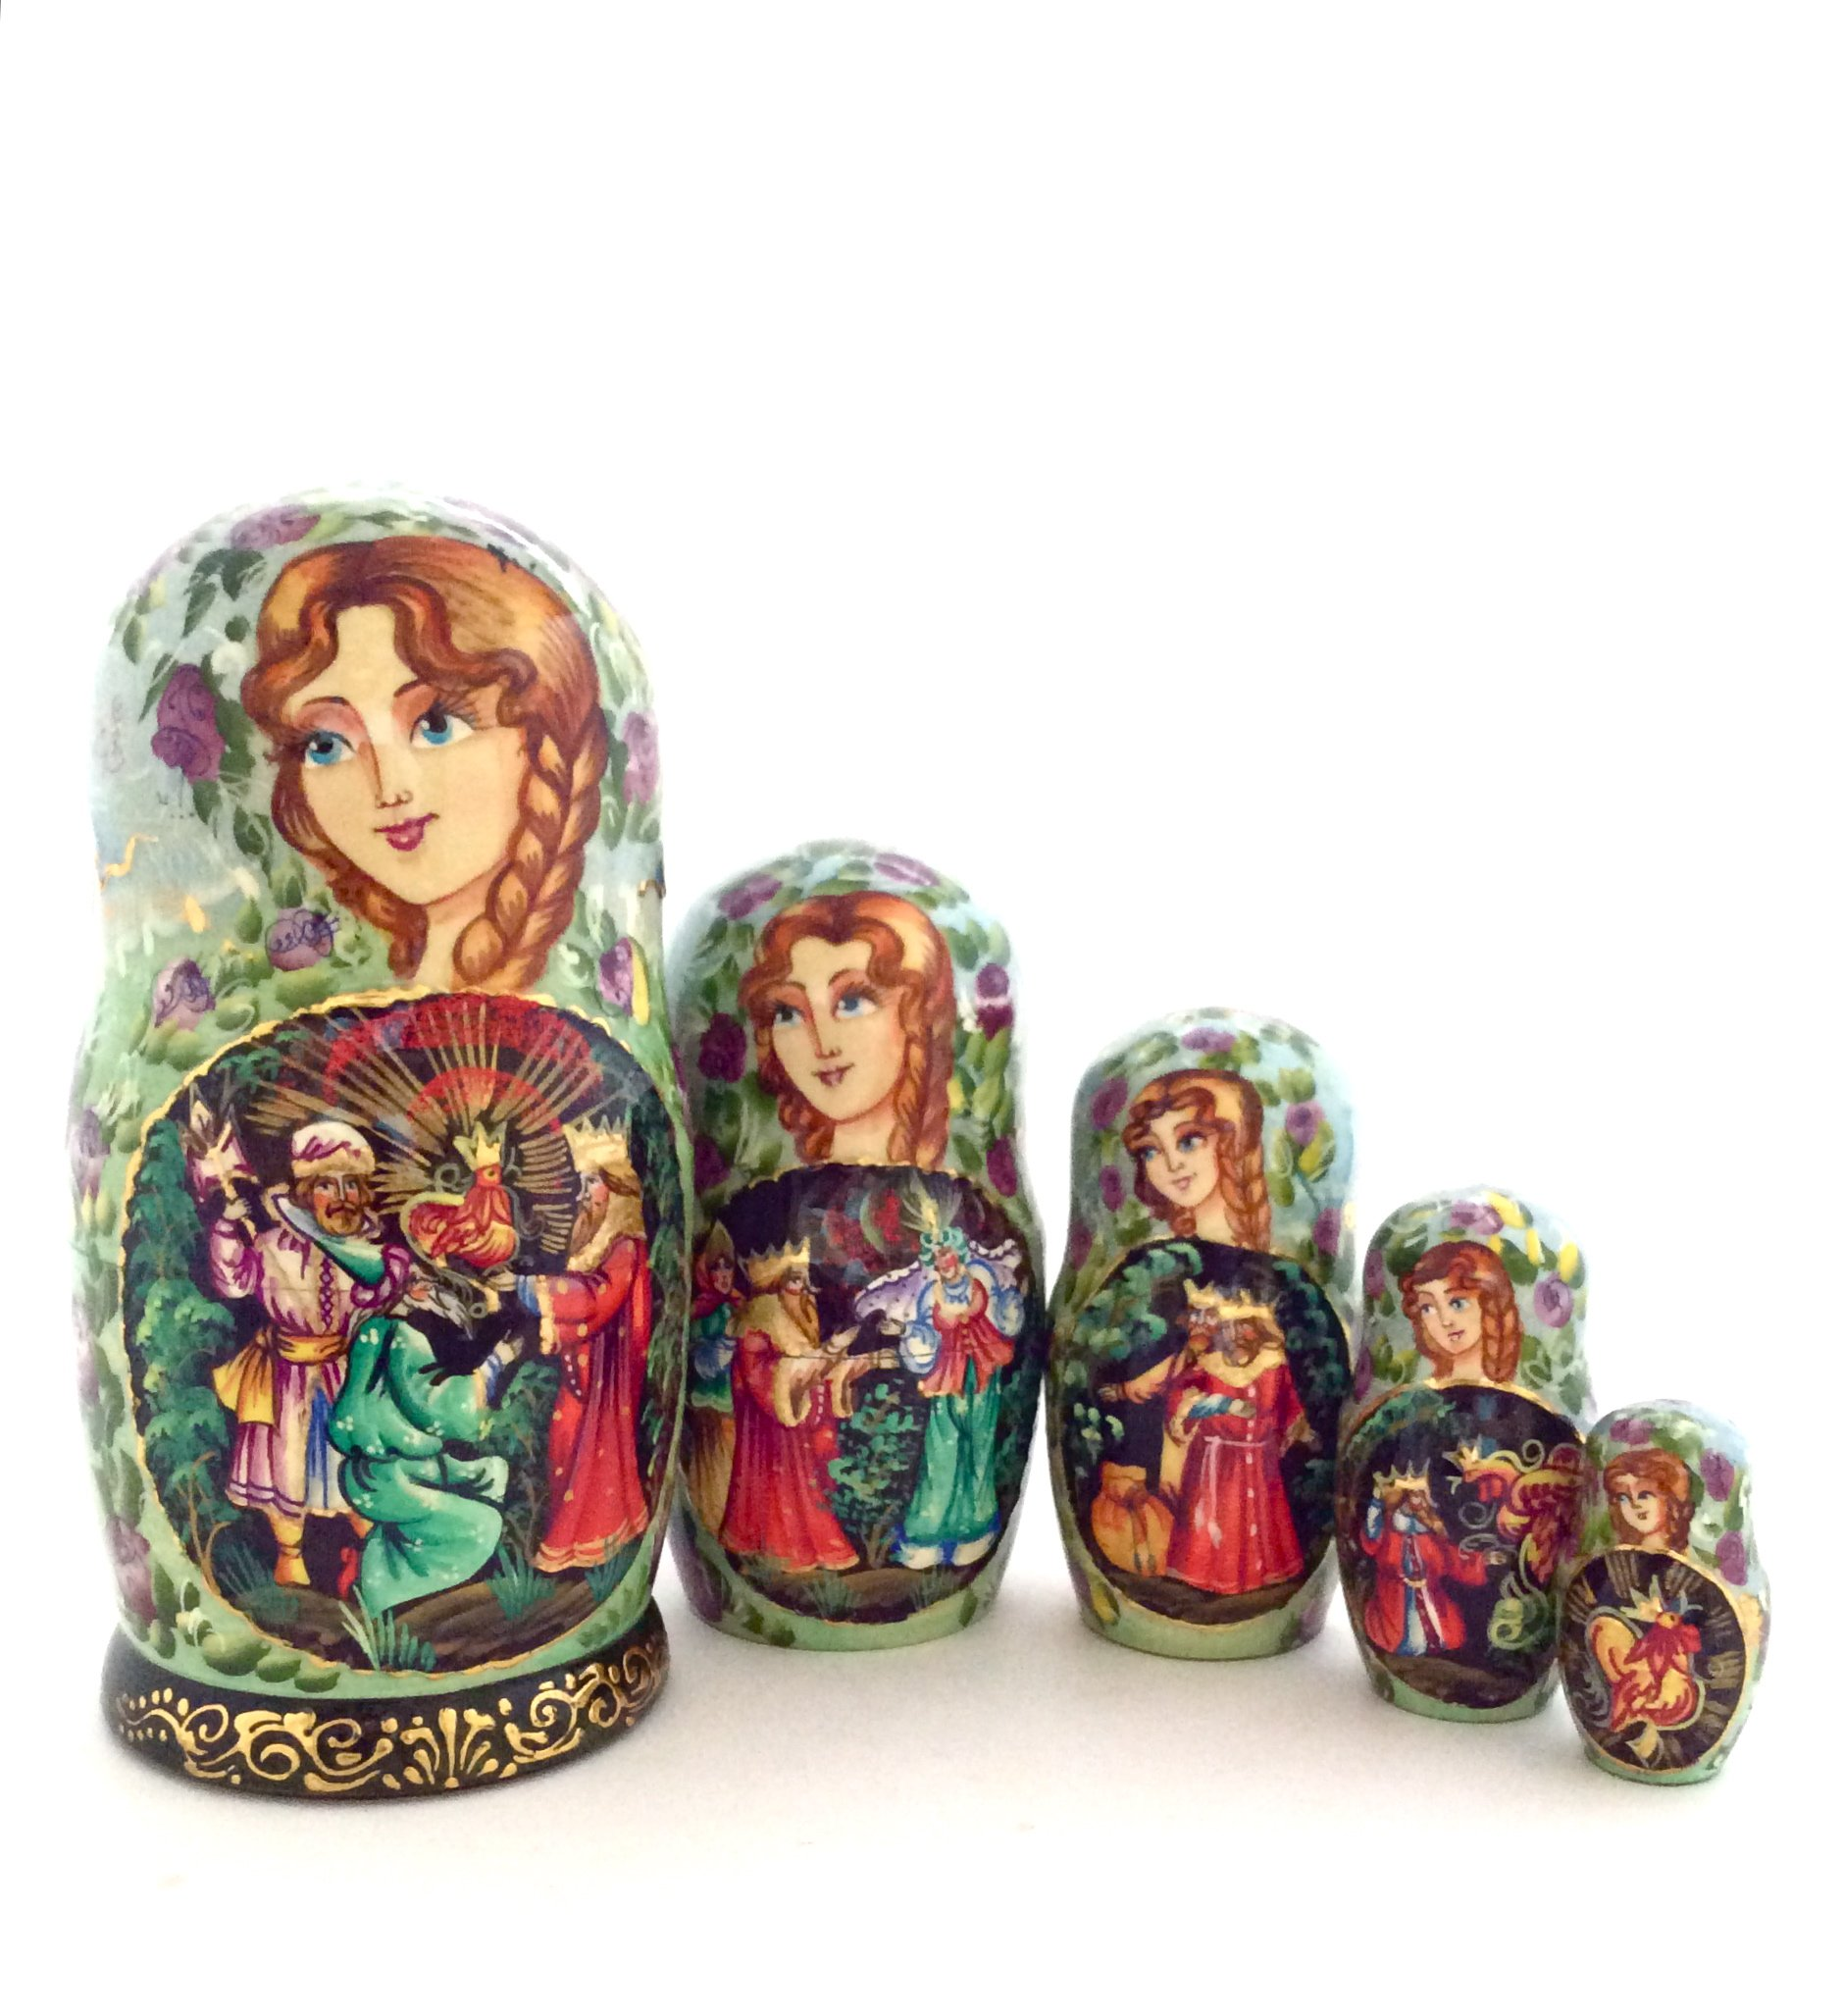 Unique Russian Nesting dolls Fairytale ''The Golden Cockerel'' Hand Carved Hand Painted 5 piece set 7'' Tall